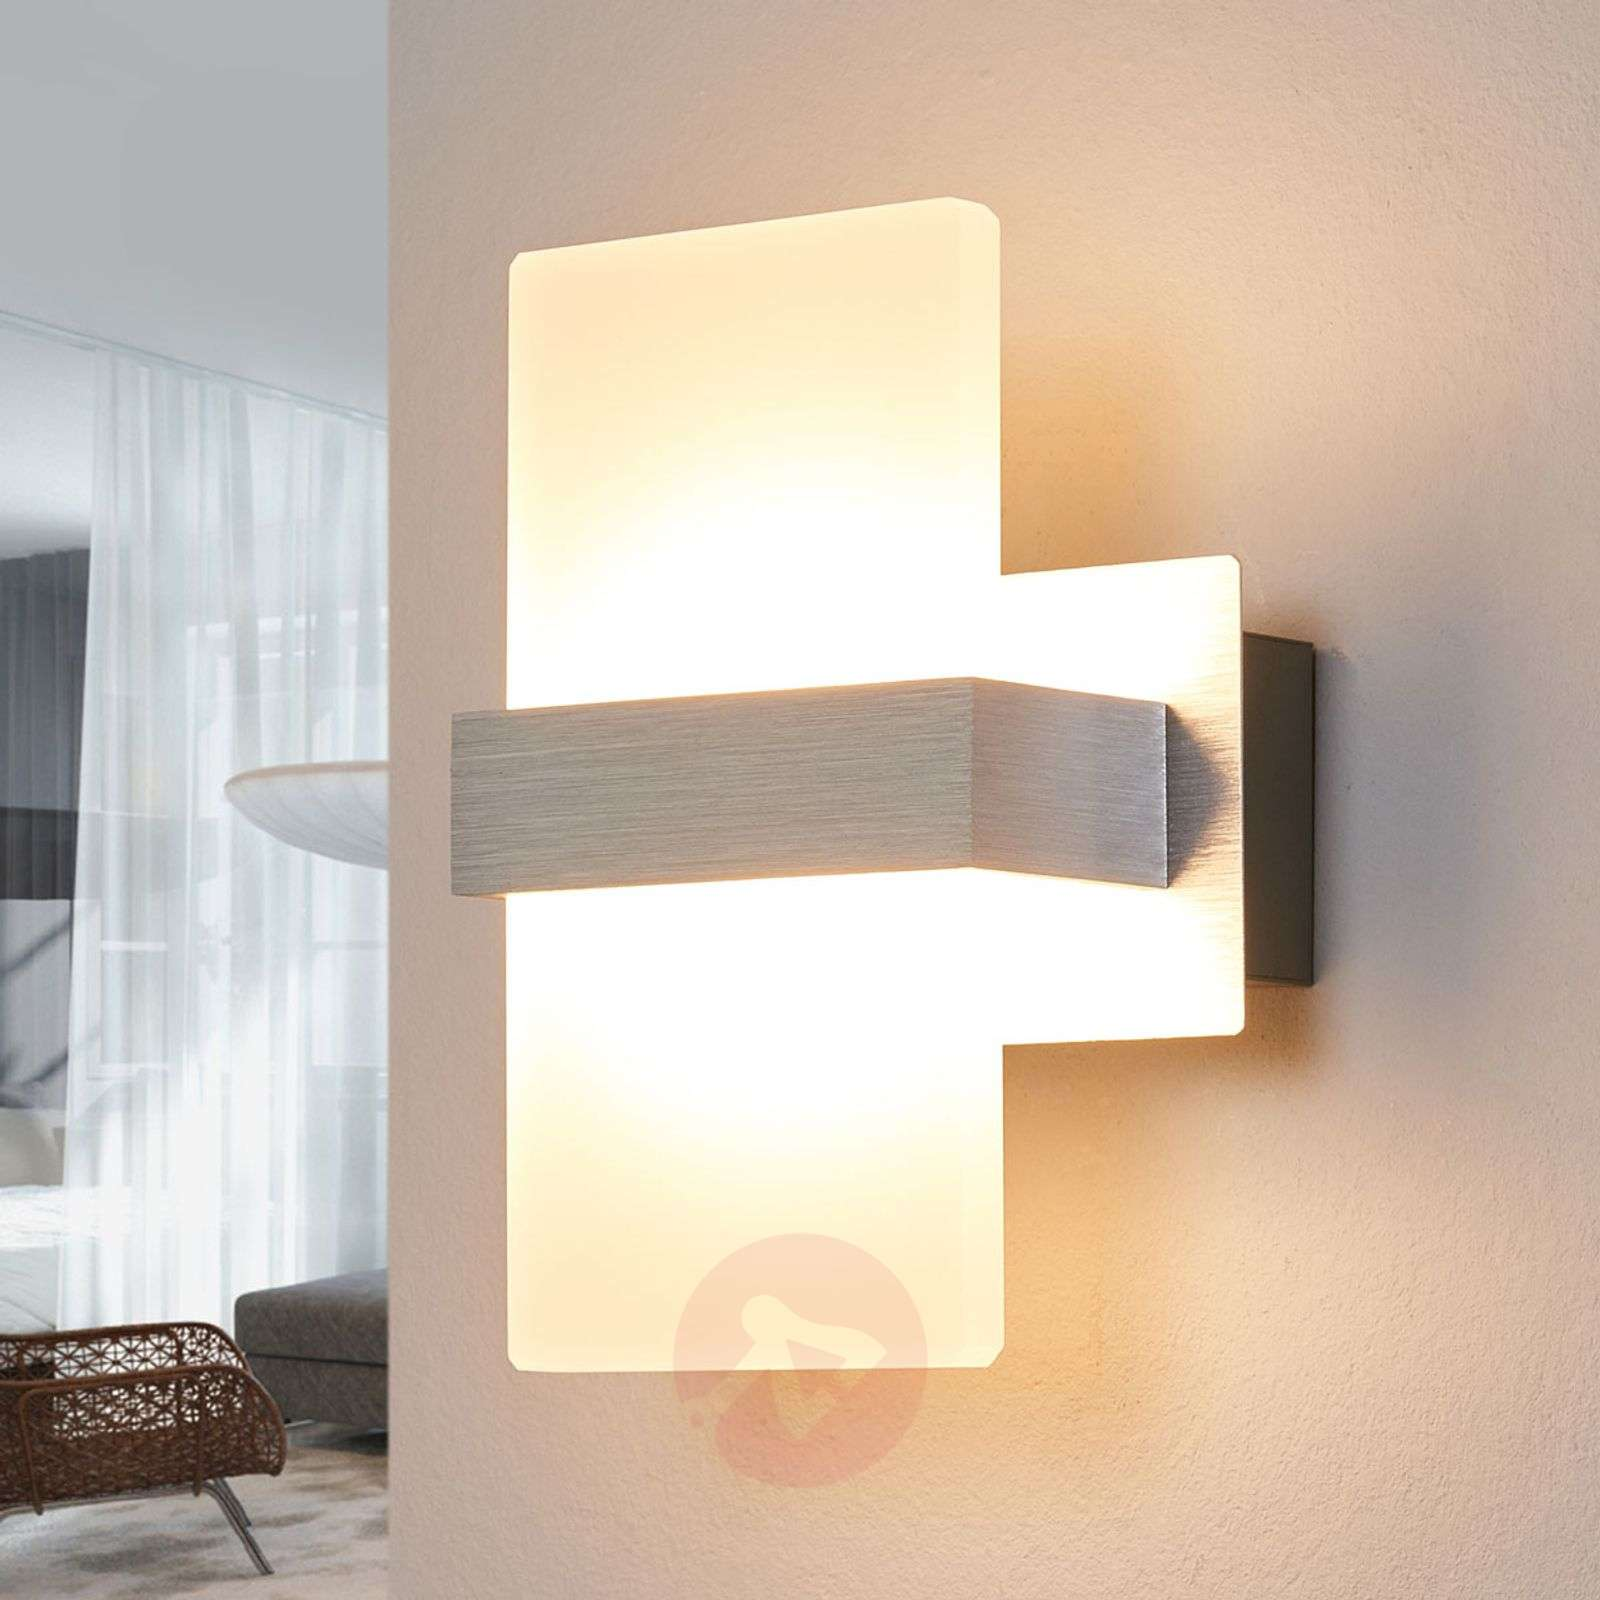 Beautiful Platon LED wall light-9004773-011